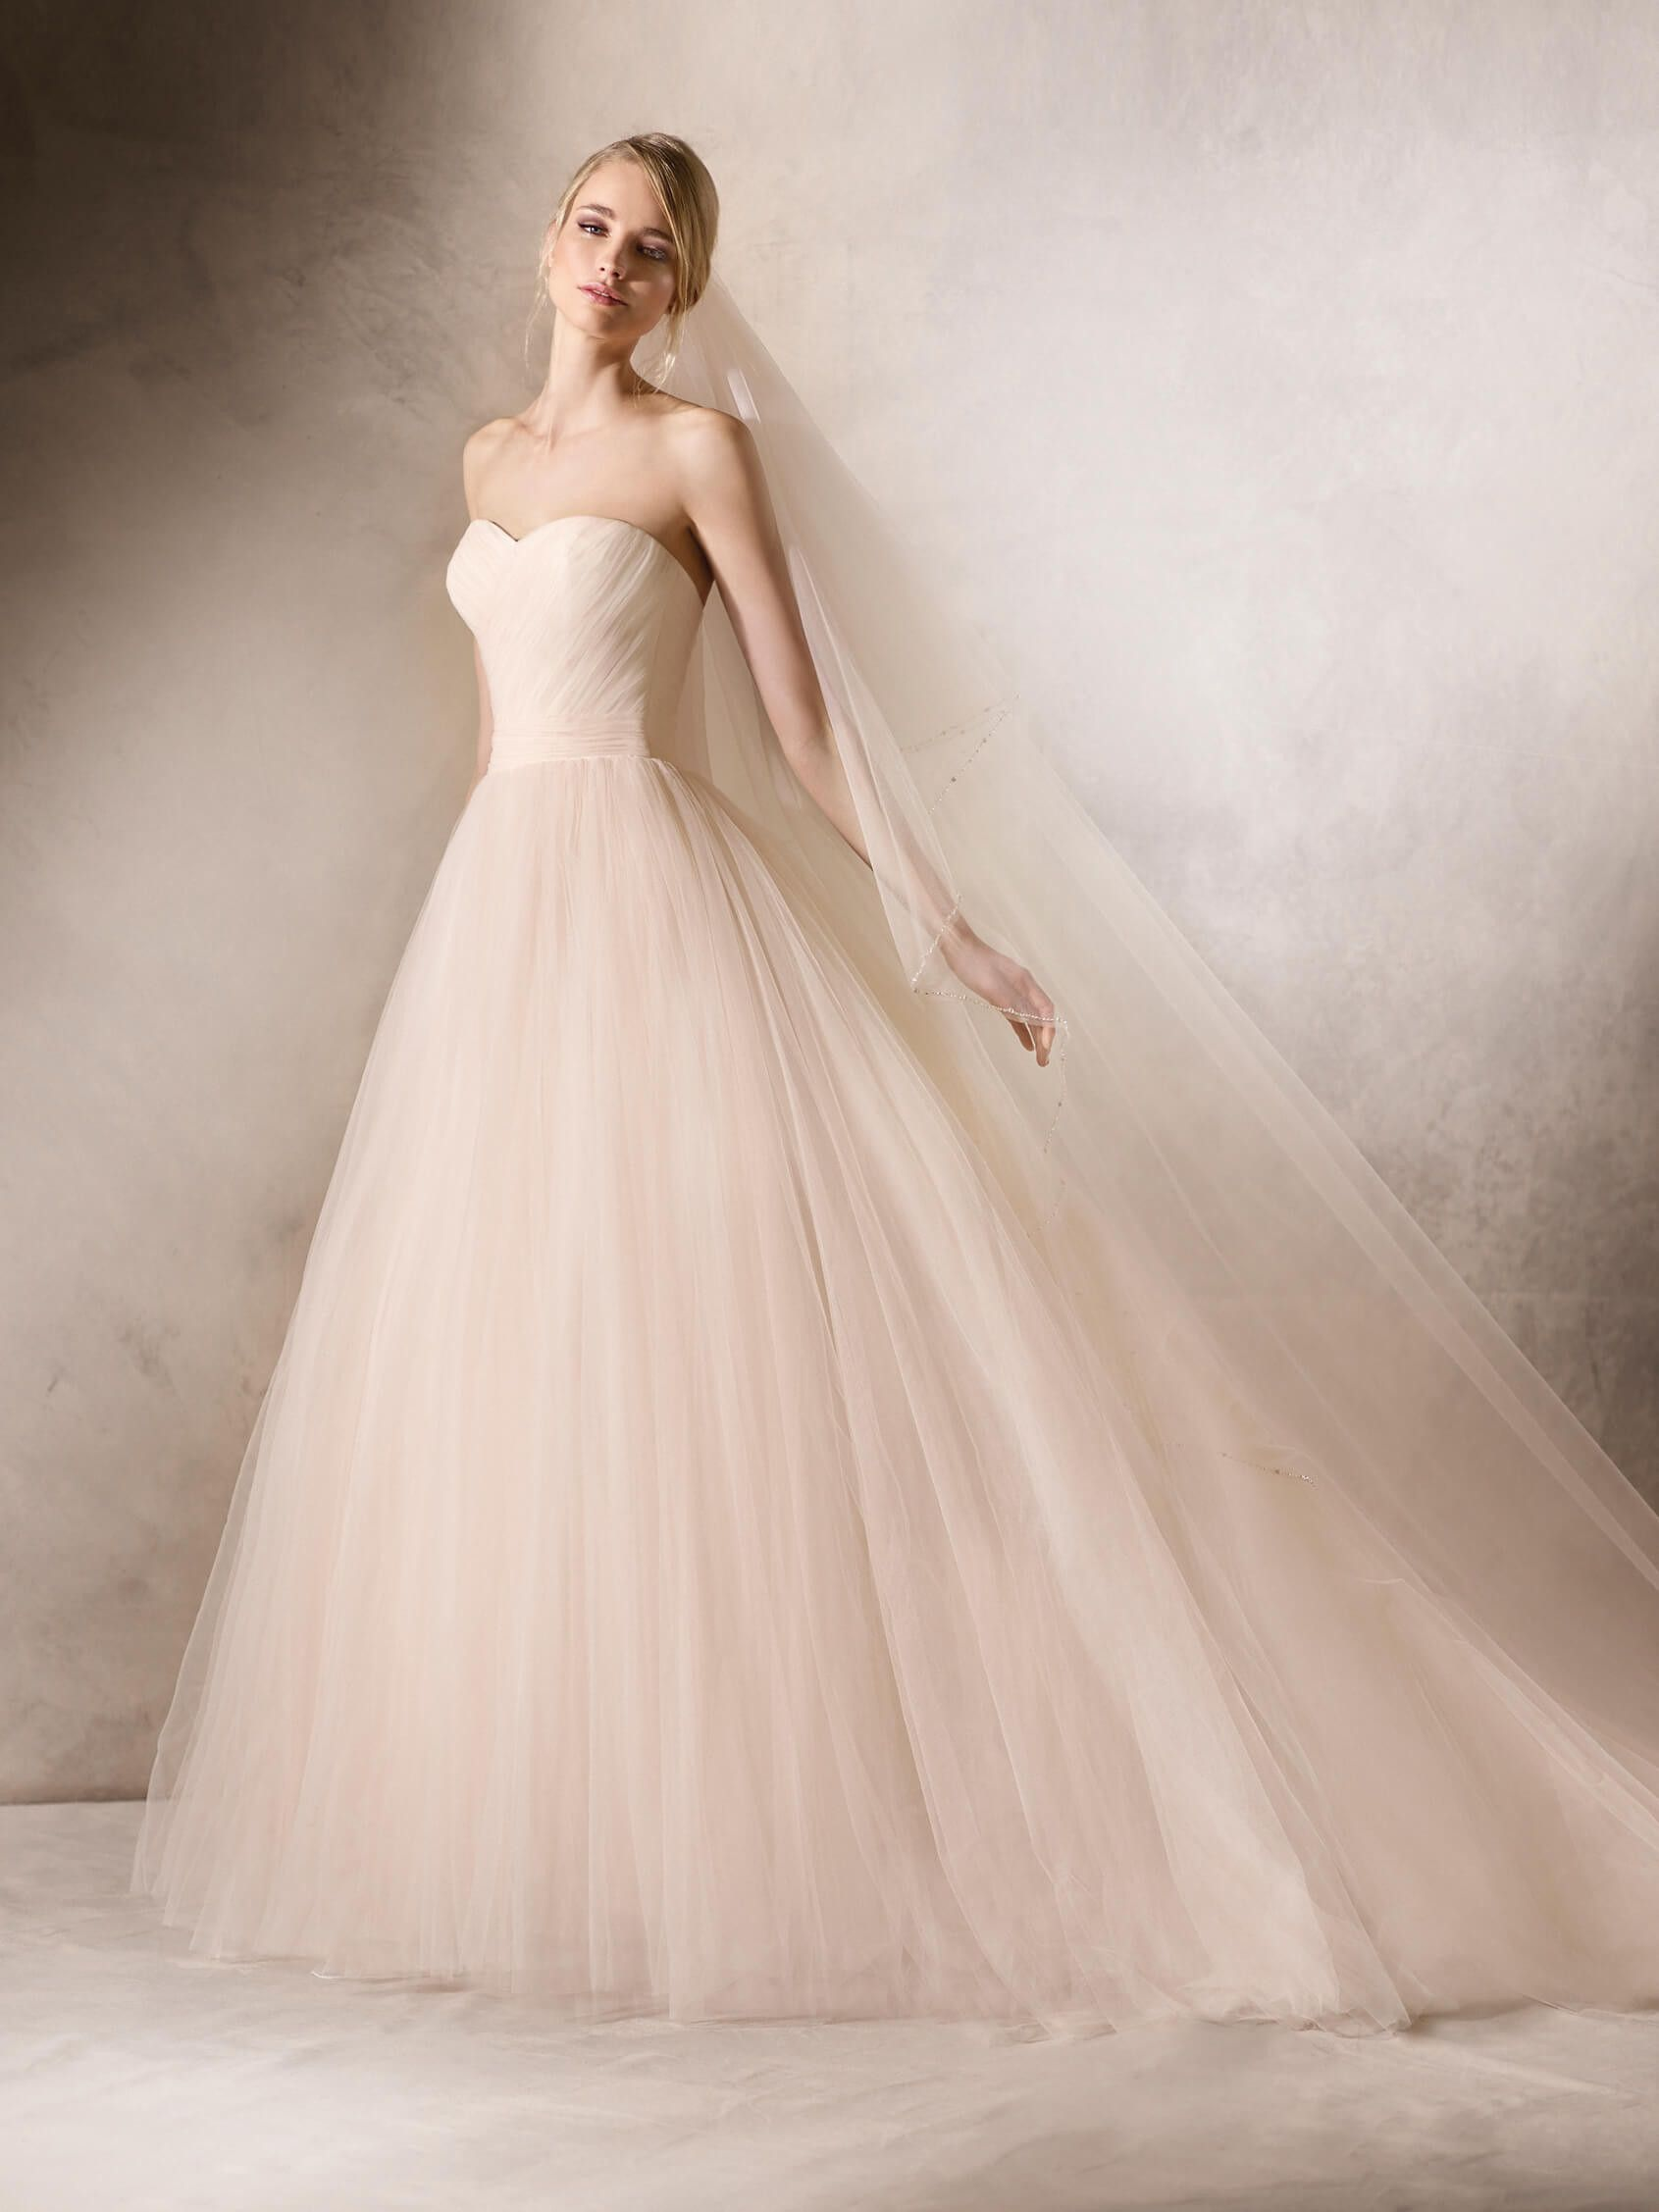 HALIMEDA is a delicate, princess wedding dress made entirely in ...